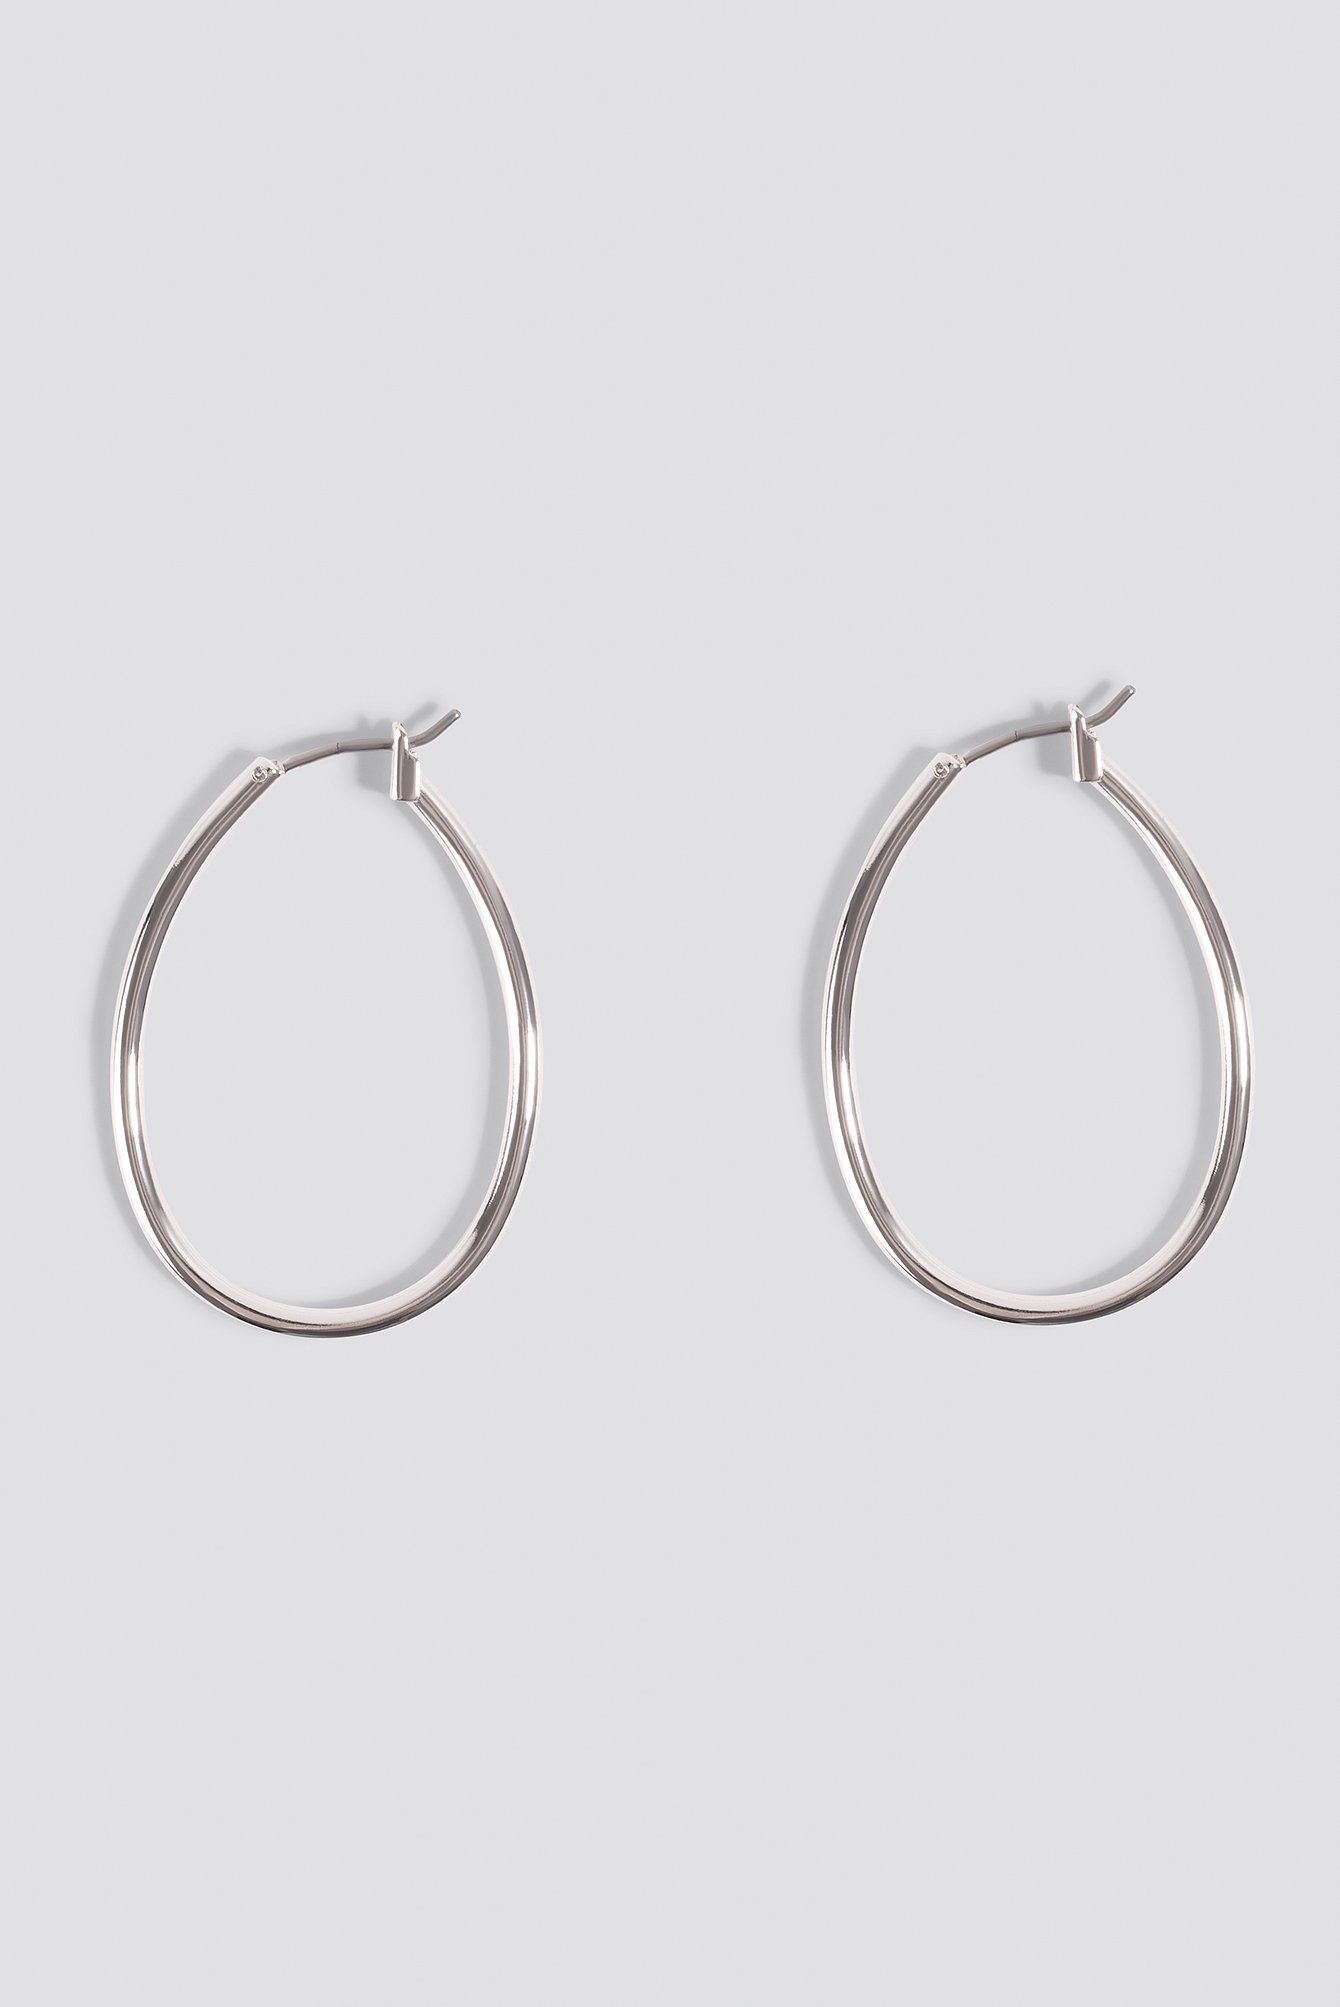 Silver Mini Oval Hoop Earrings